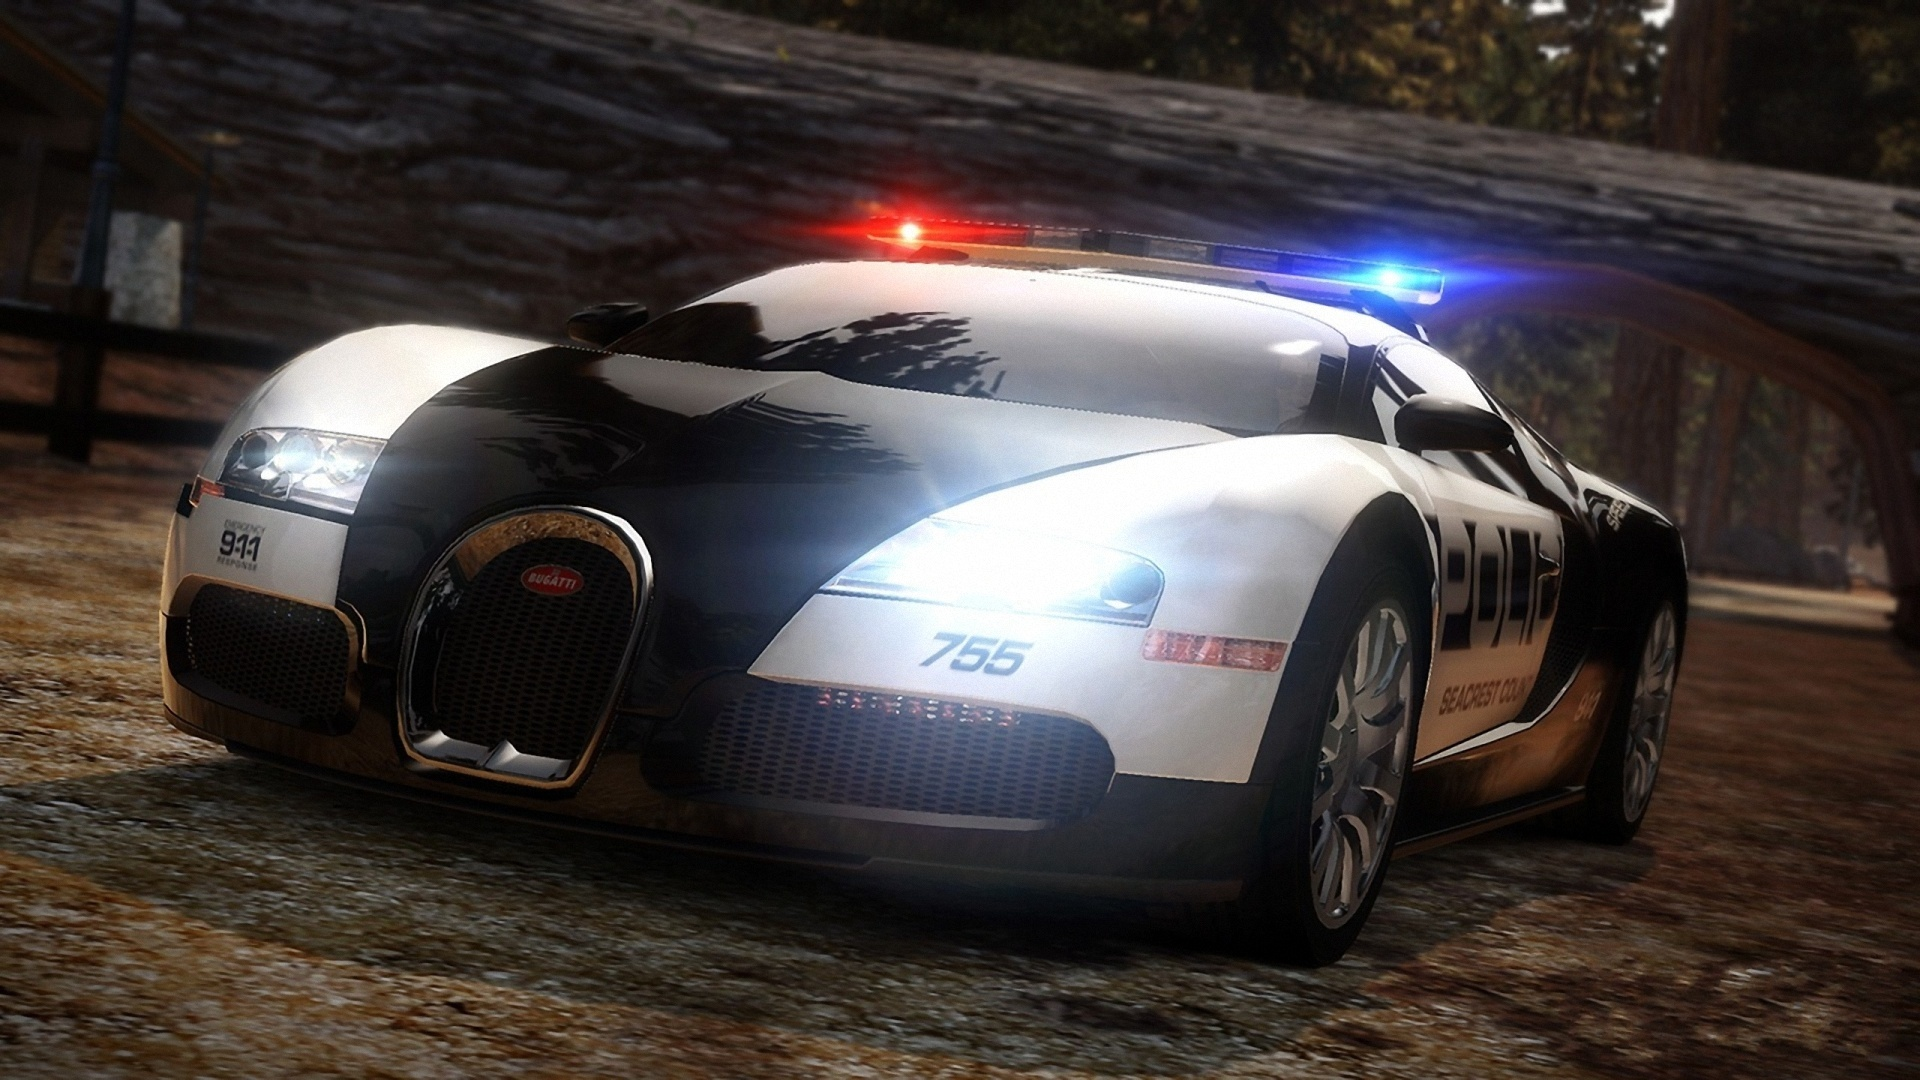 download police car wallpaper which is under the car wallpapers ...